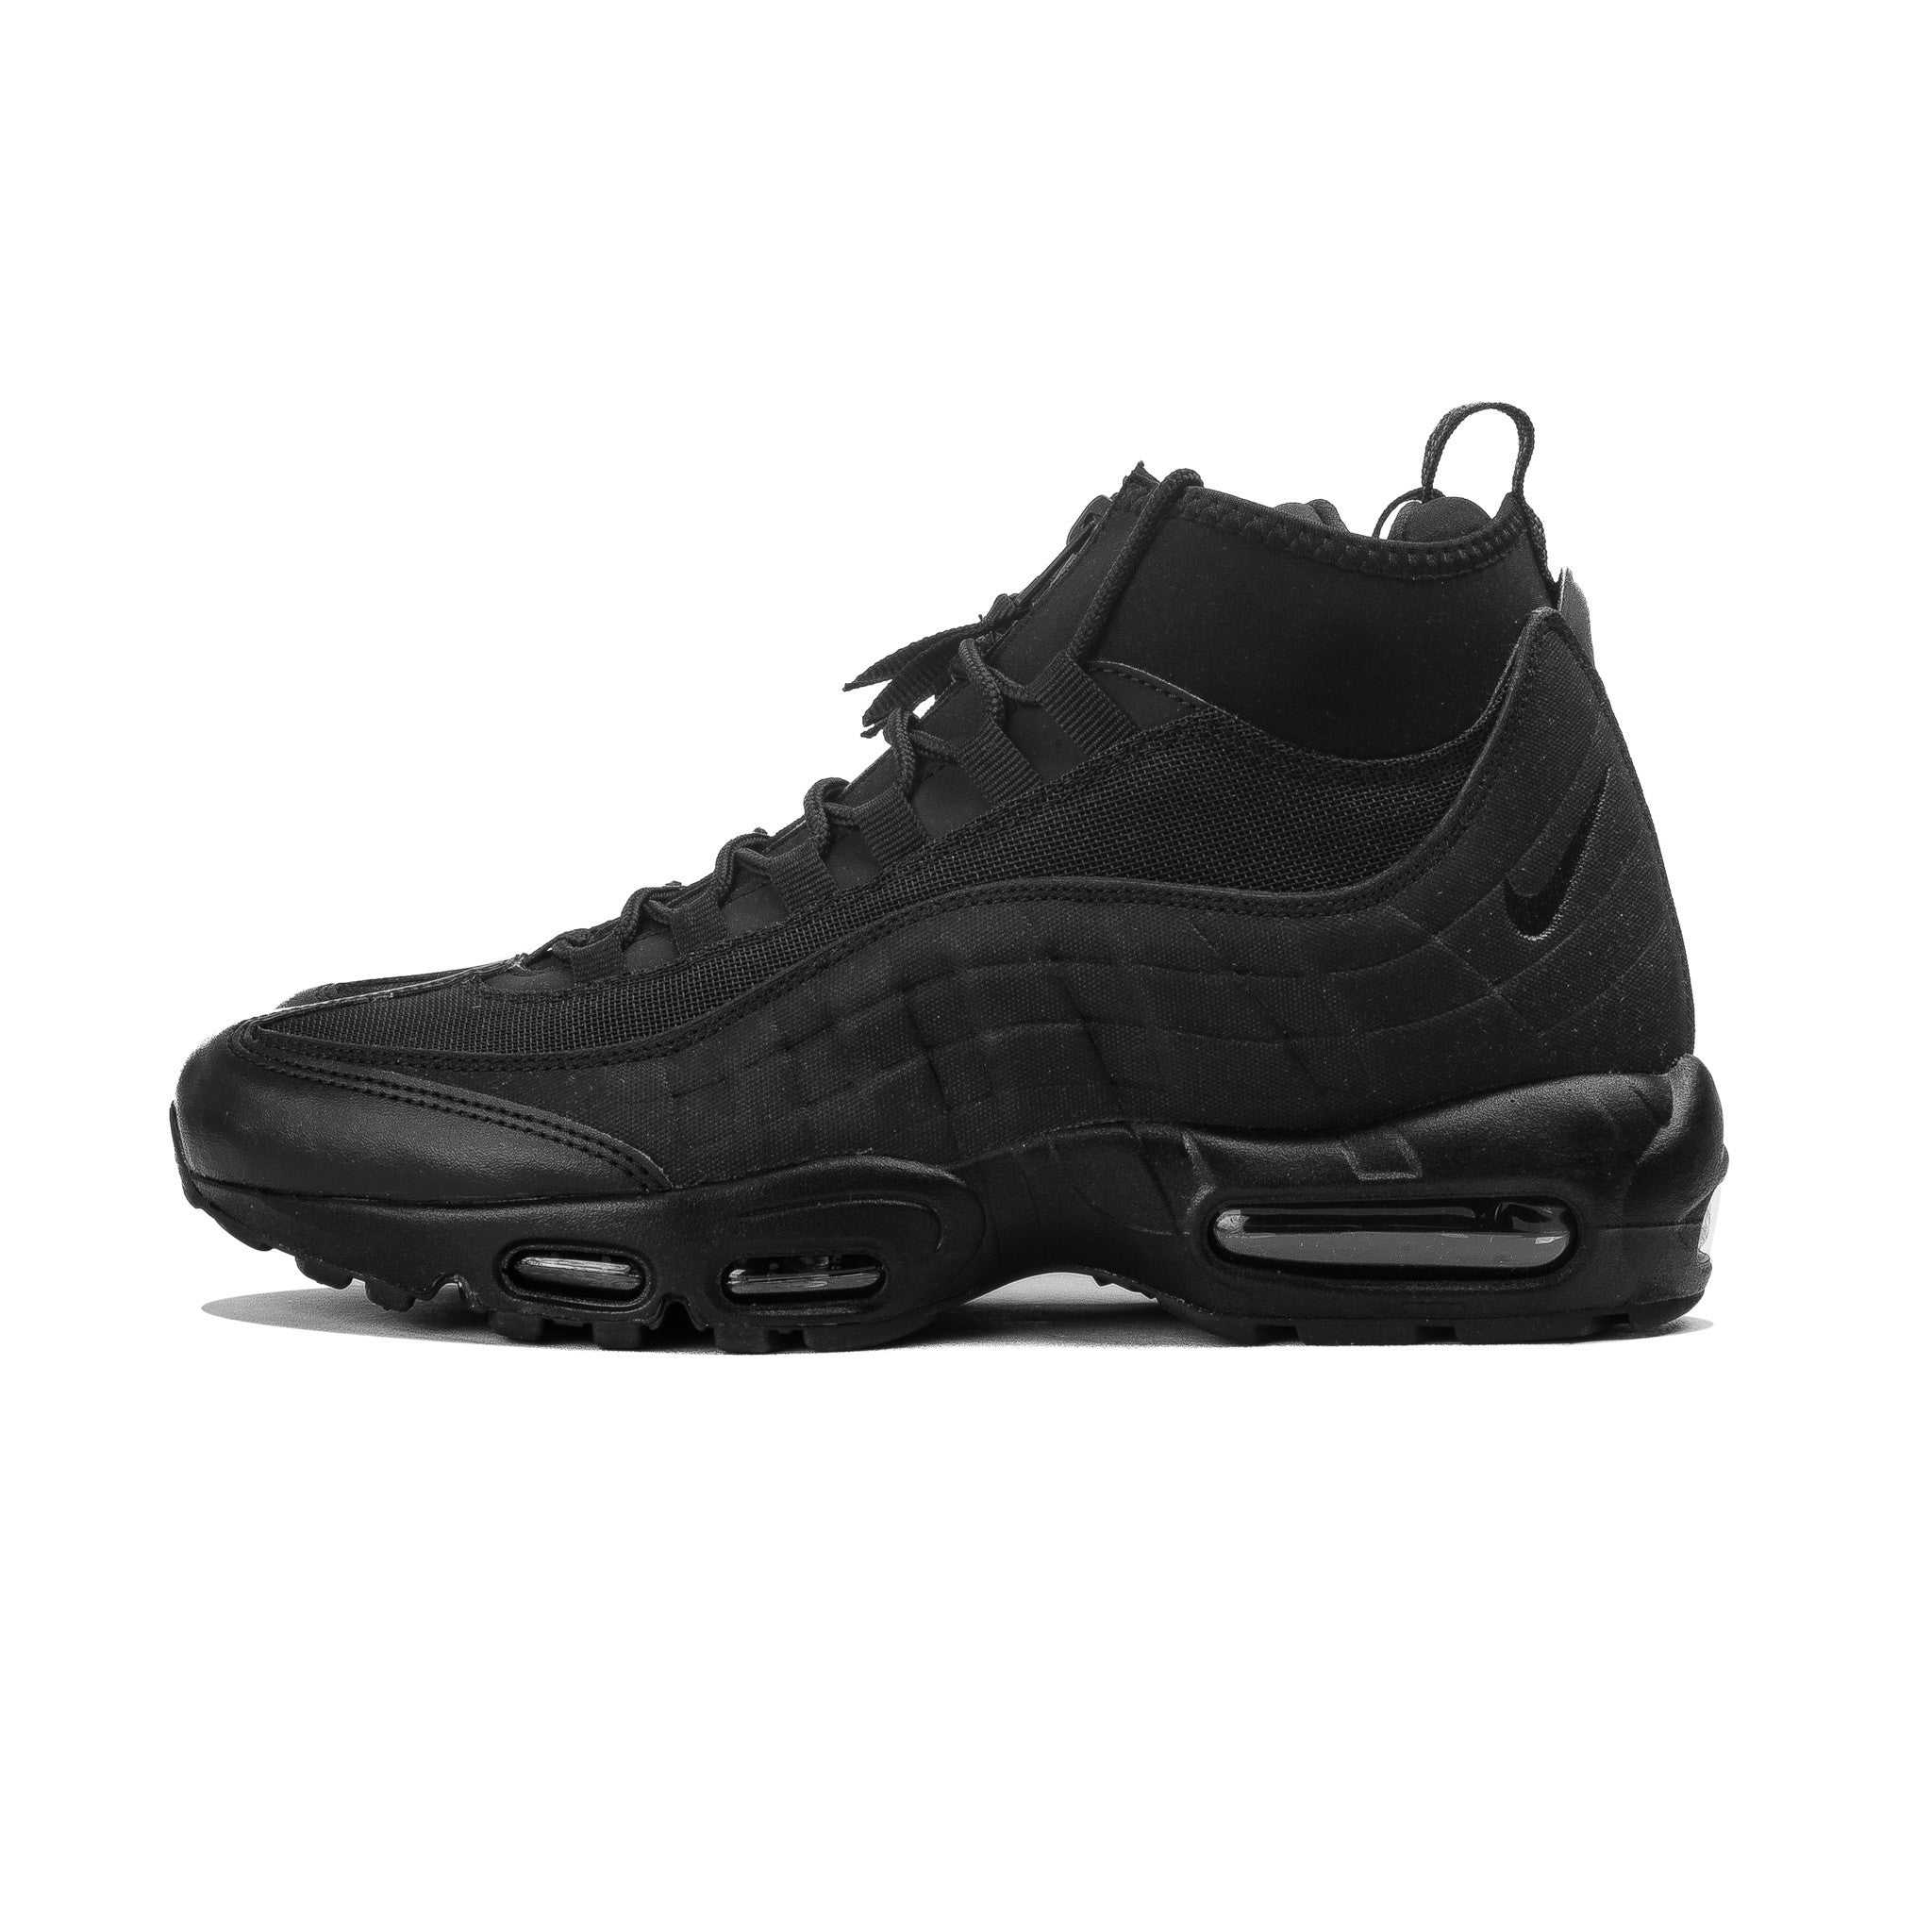 Air Max 95 Sneakerboot 806809-002